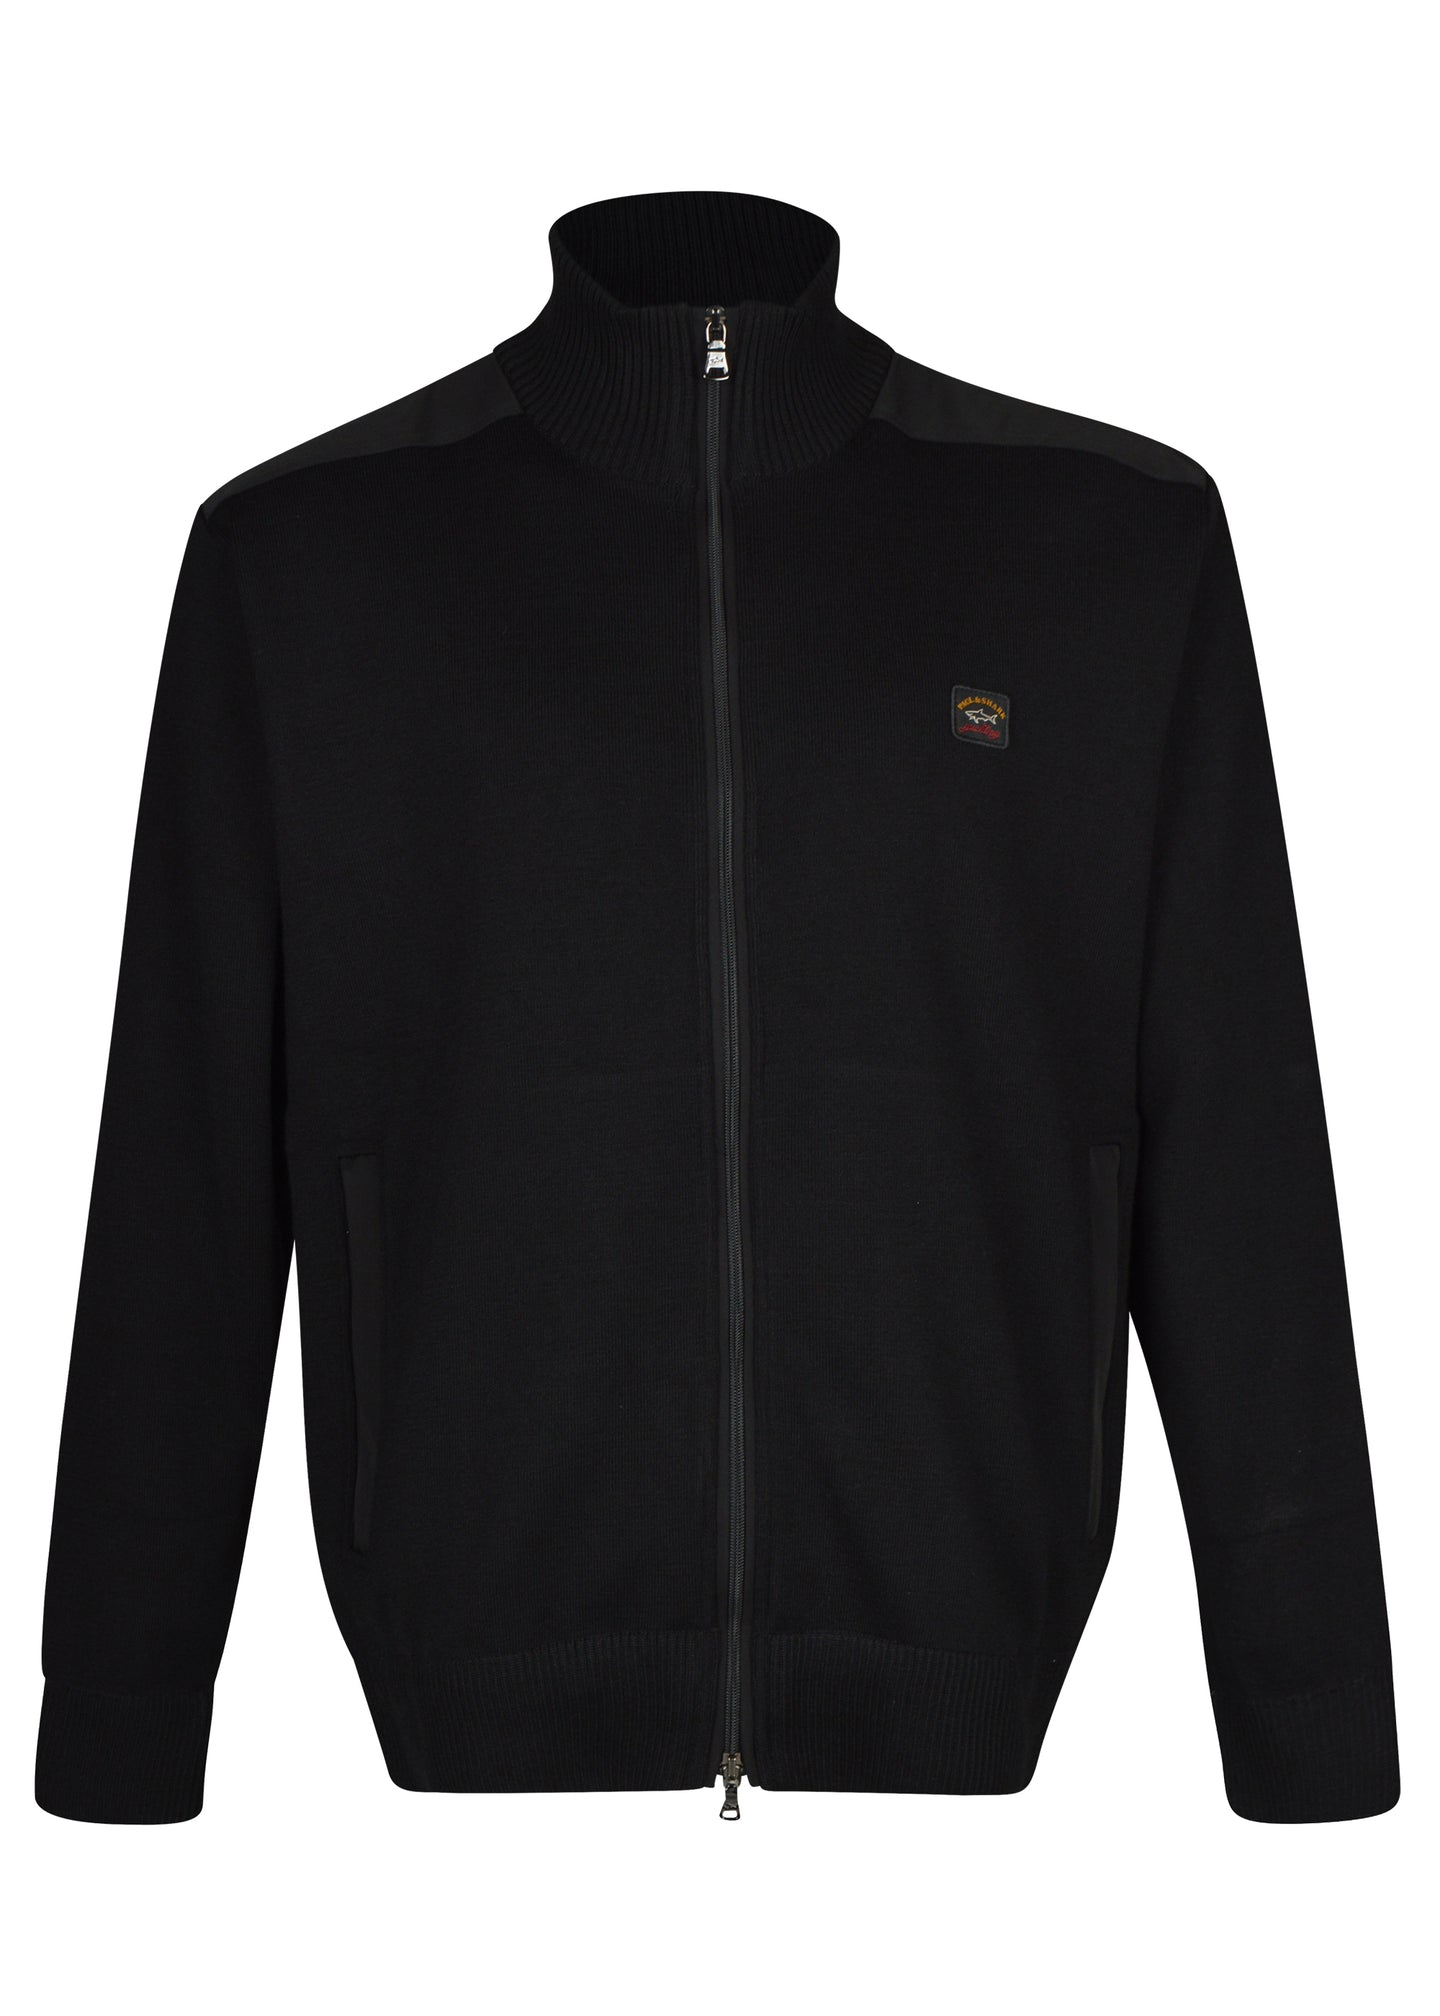 Paul & Shark - Classic Zip Through Heavy Knit Funnel Neck Jacket - 100187 - Black